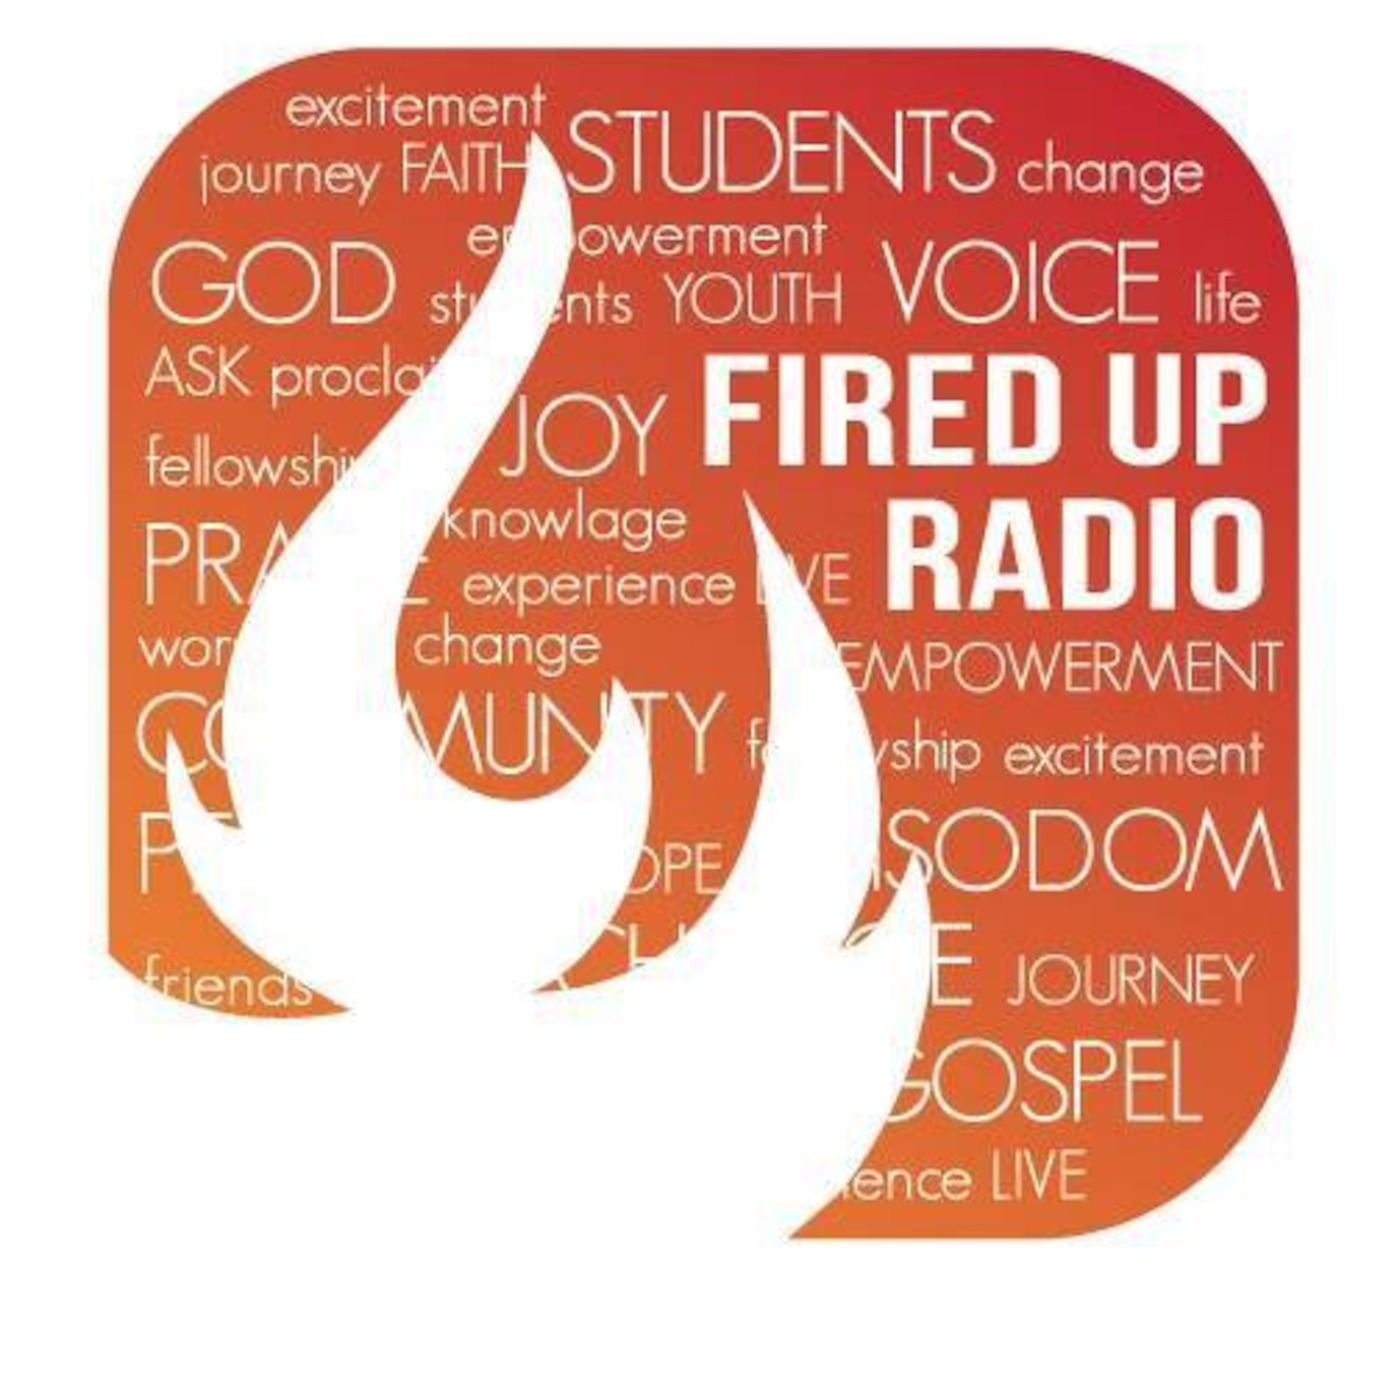 Fired Up Radio!